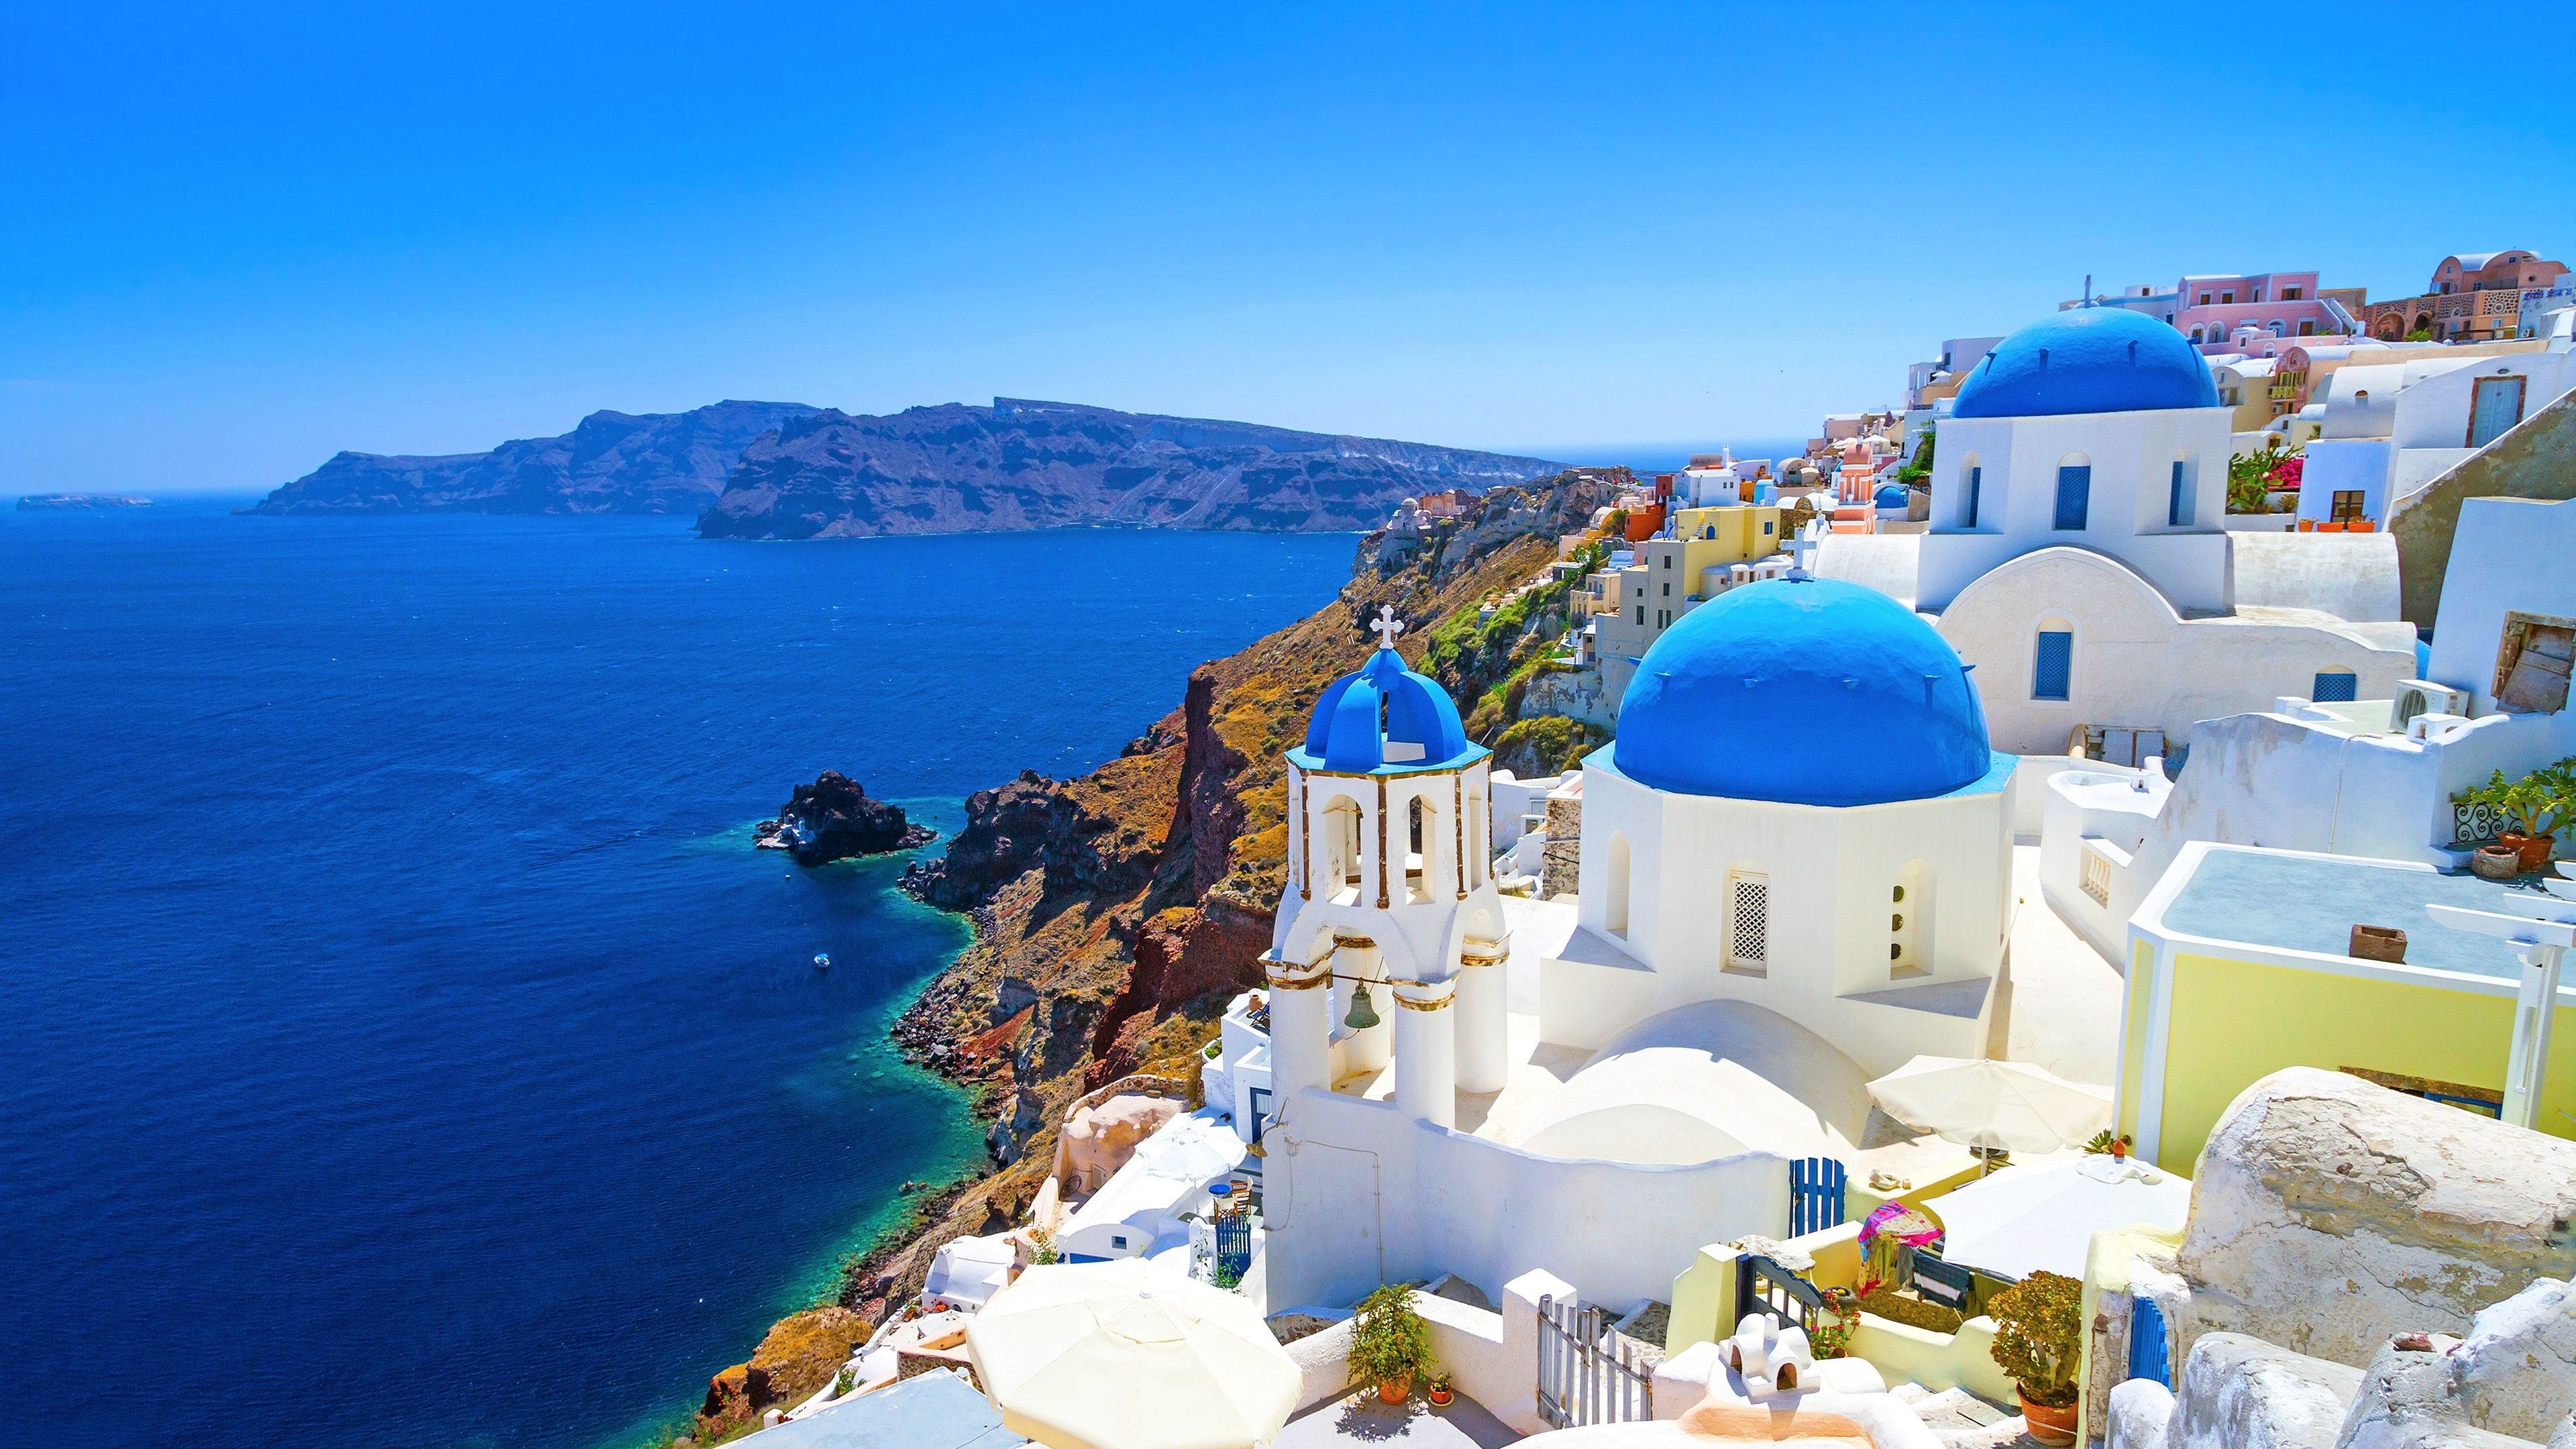 Greece 4K Wallpapers   Top Greece 4K Backgrounds 3840x2160